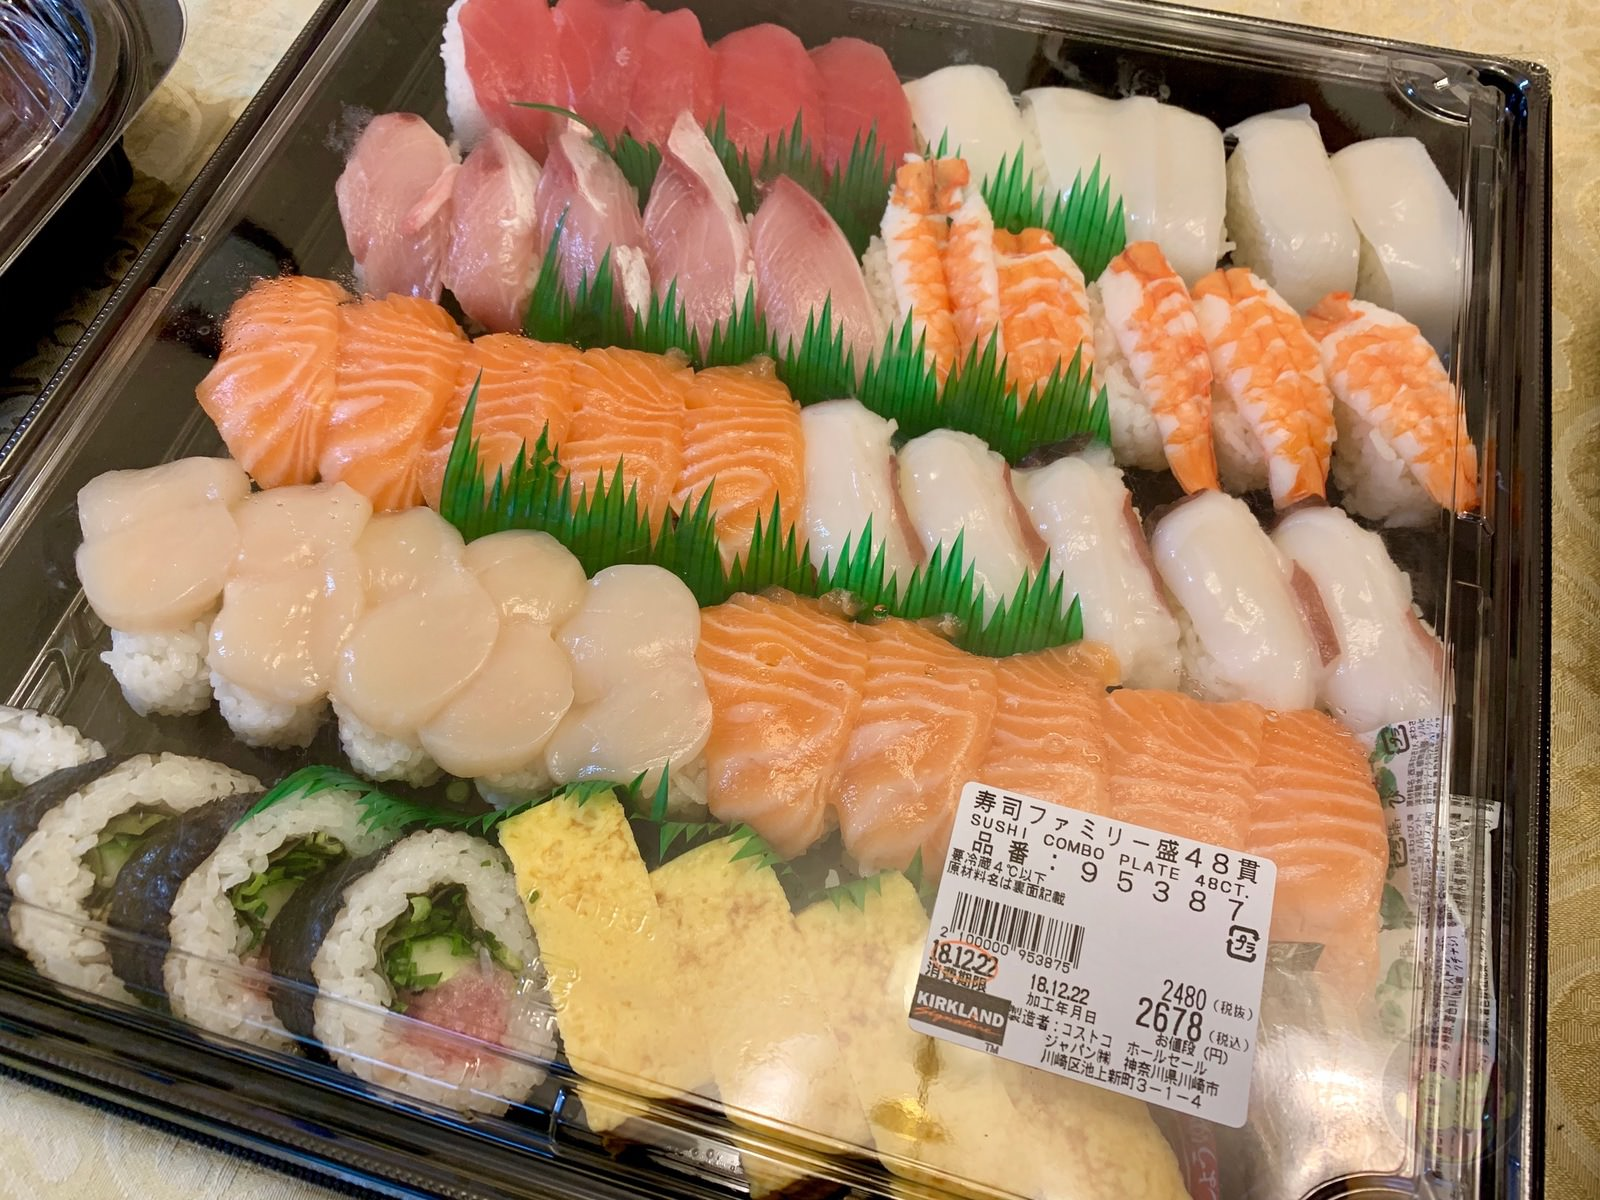 Costco-ChickenWings-Sushi-RoastBeef-and-so-on-01.jpg